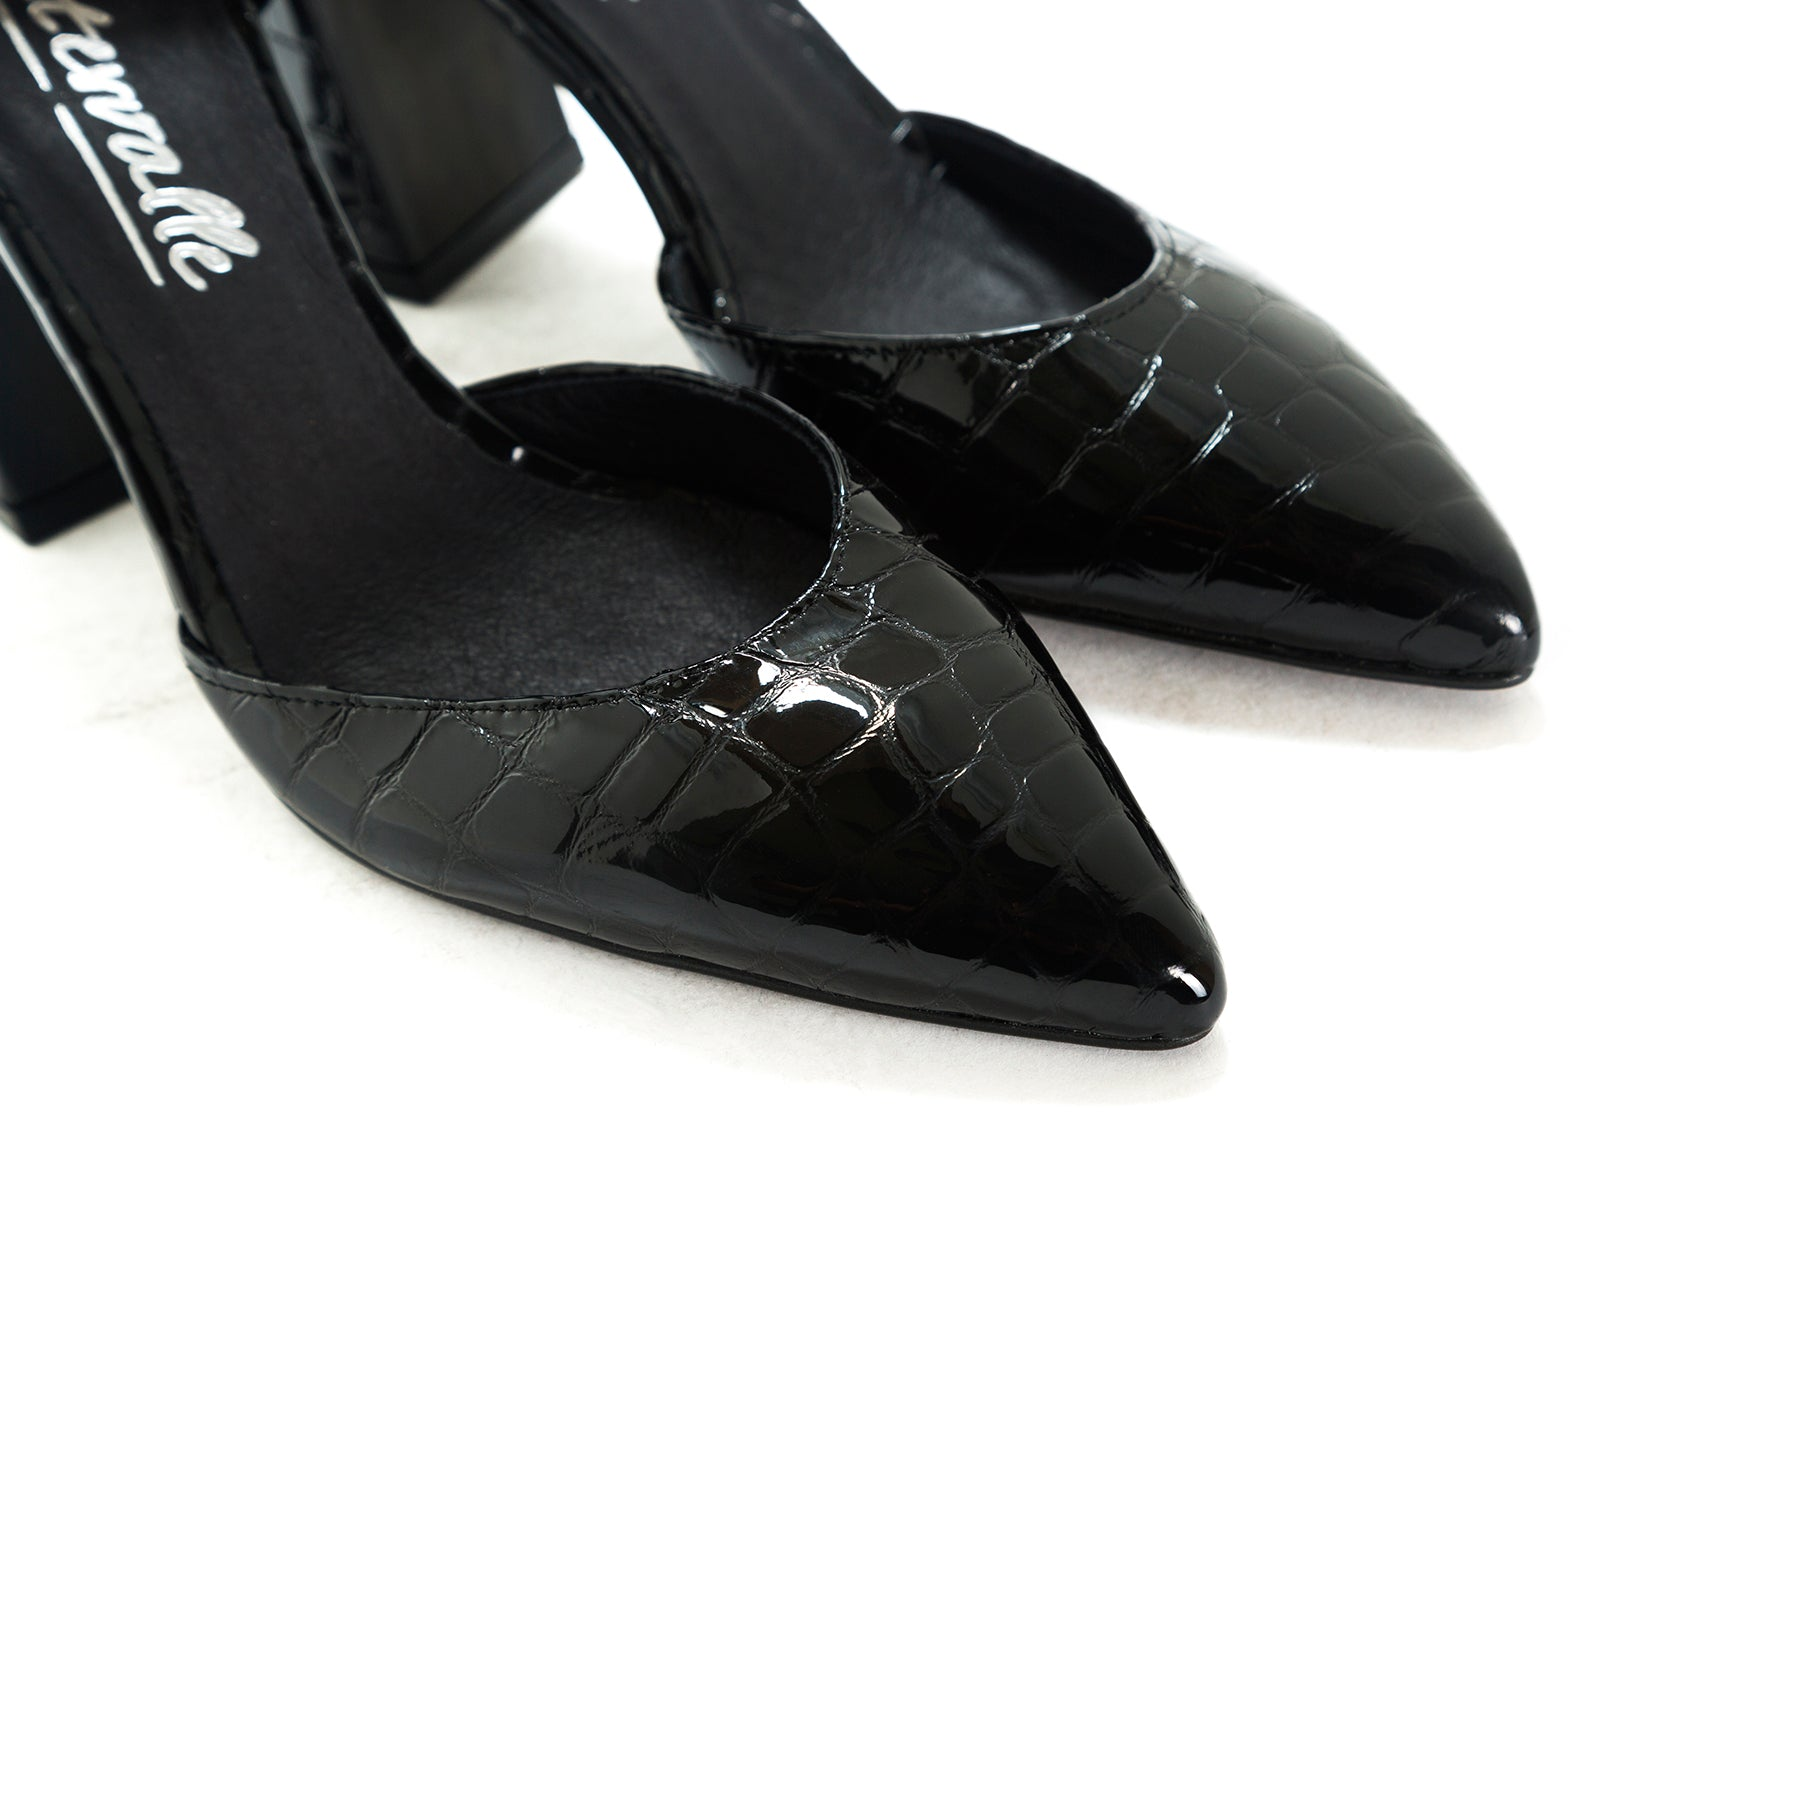 Felicia Black Croco Pumps